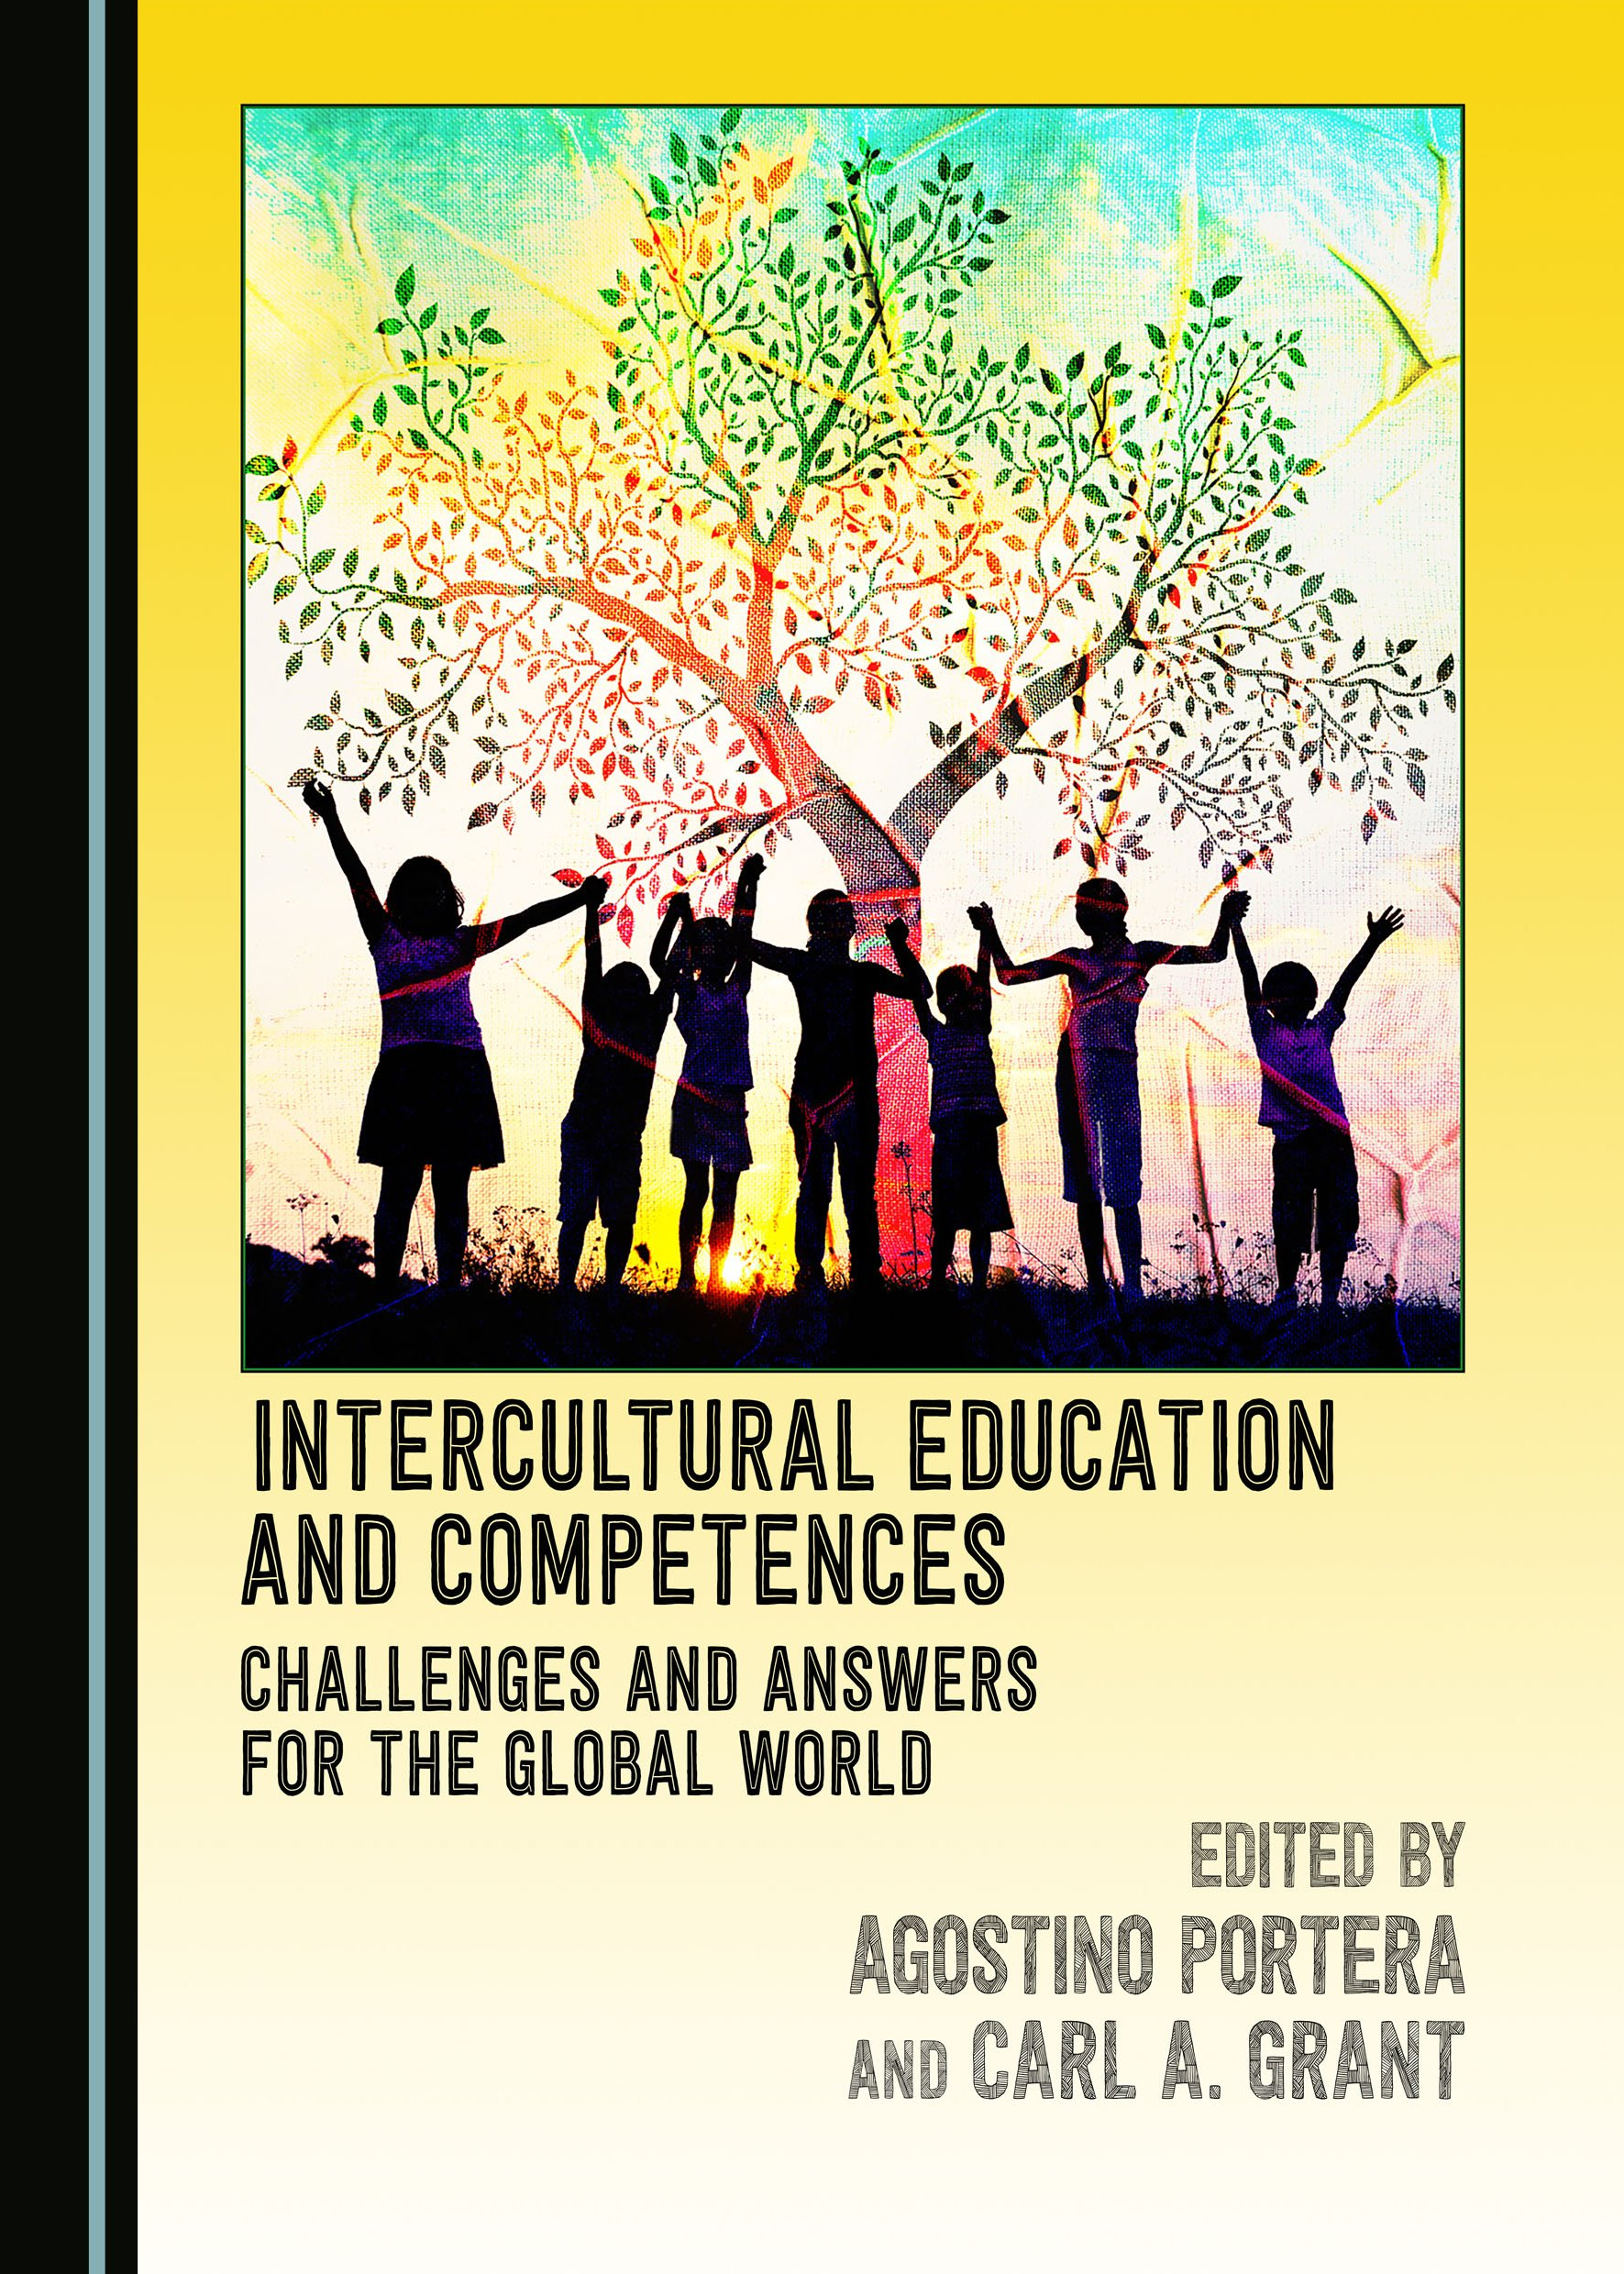 Intercultural Education and Competences: Challenges and Answers for the Global World